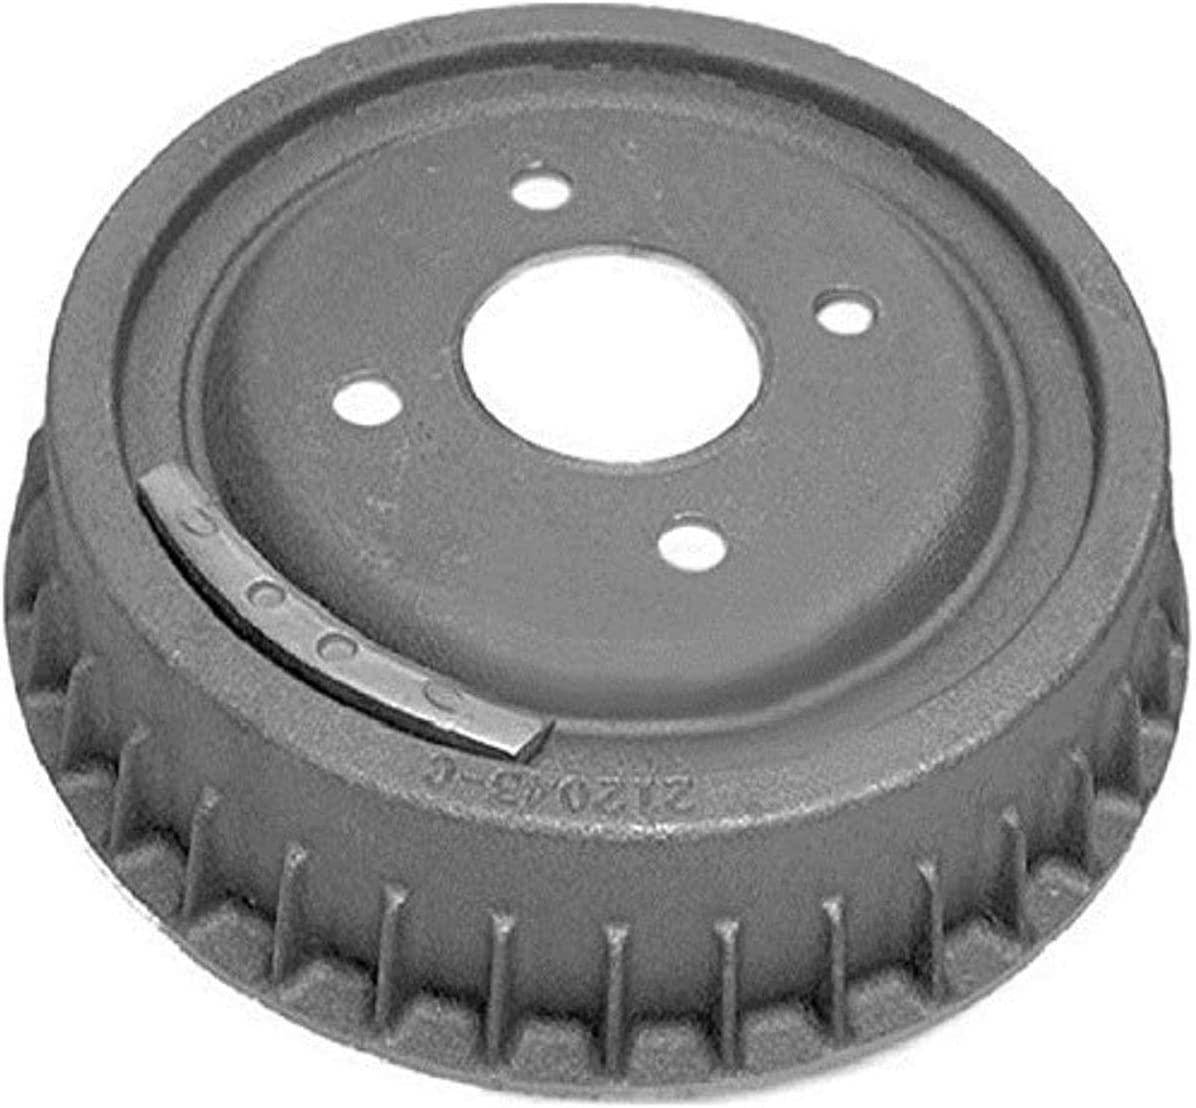 Purchase Bendix Premium Drum and PDR0371 Brake ! Super beauty product restock quality top! Rear Rotor